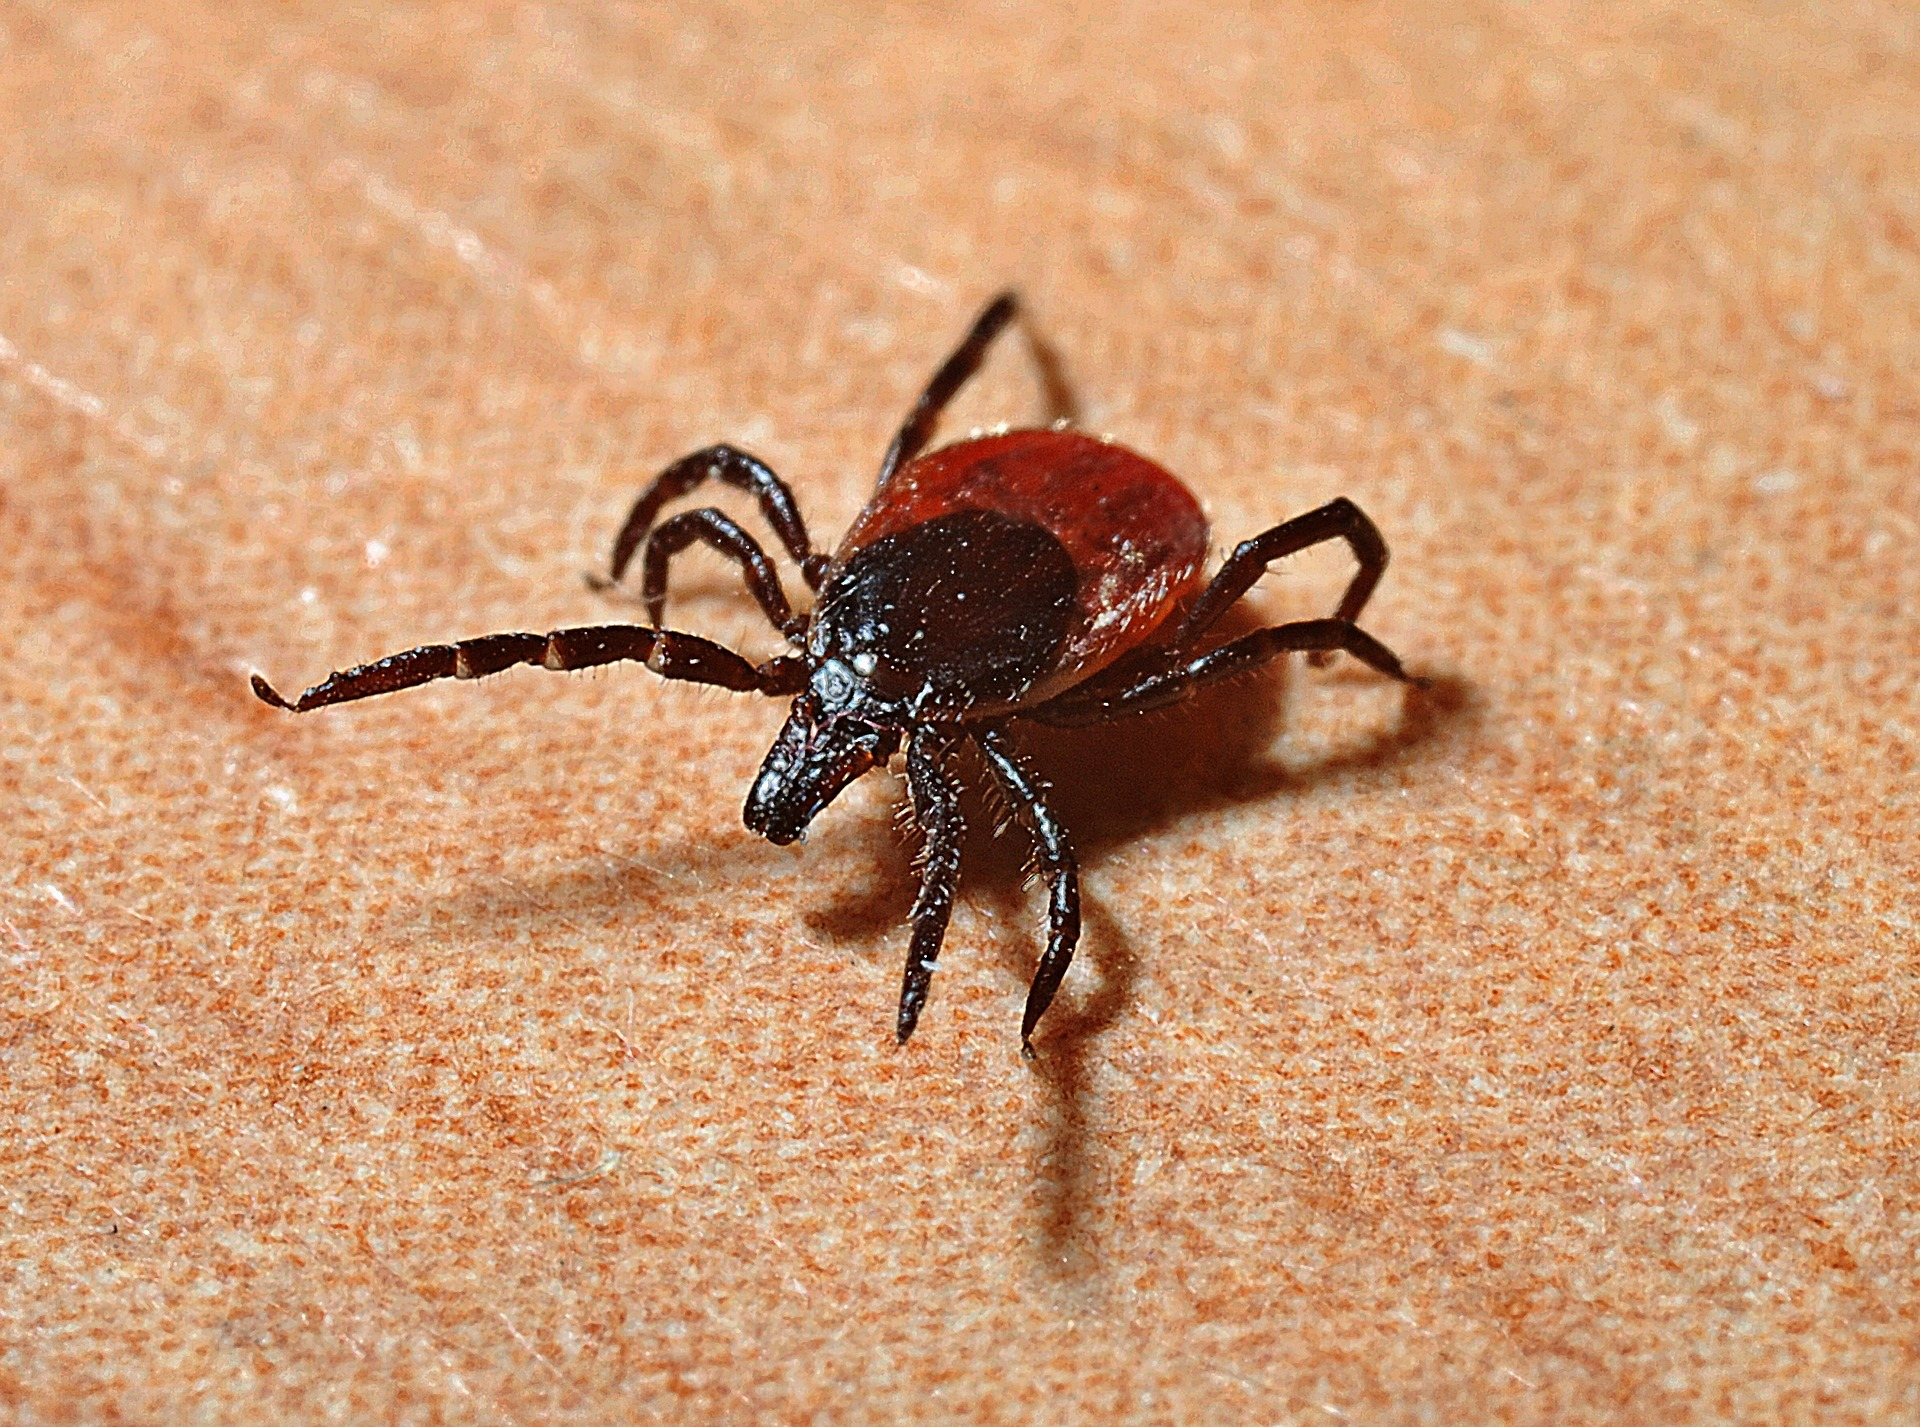 5 tips to protect your dog from ticks